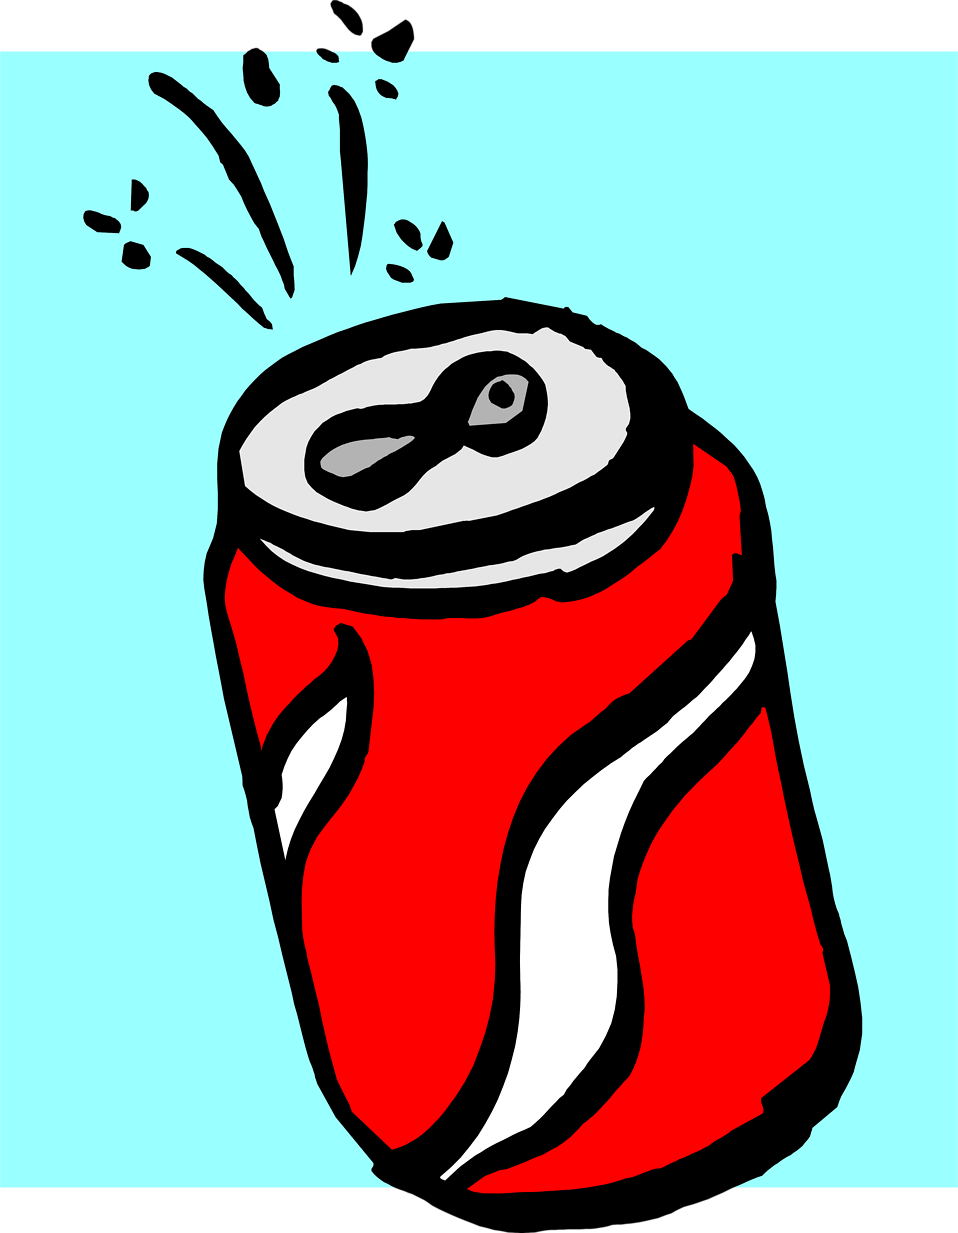 Illustration of a can of soda.